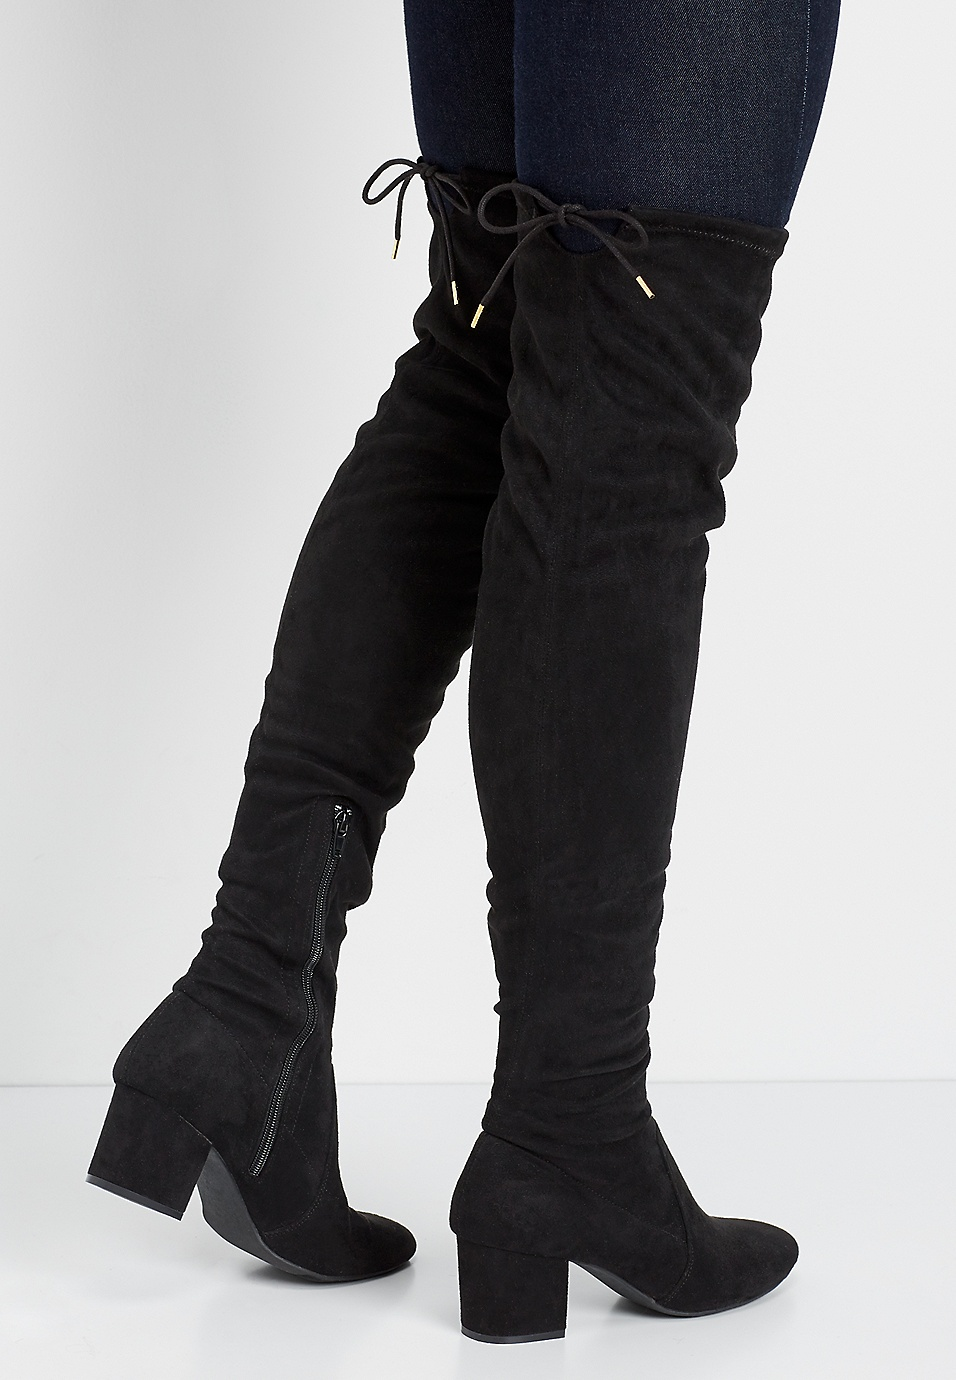 891506d21ca Gillian faux suede knee high boot